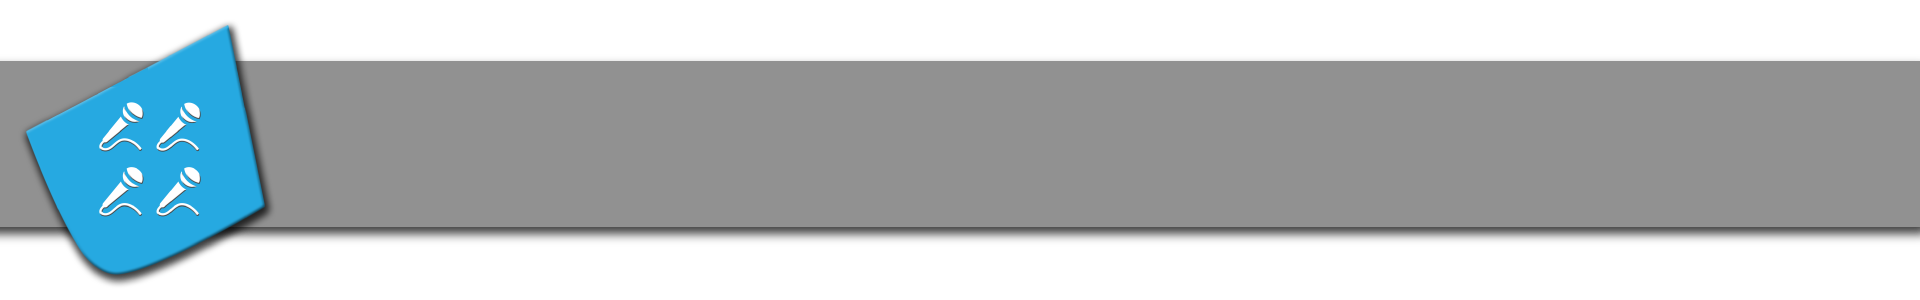 VWF-Panel-Banner.png